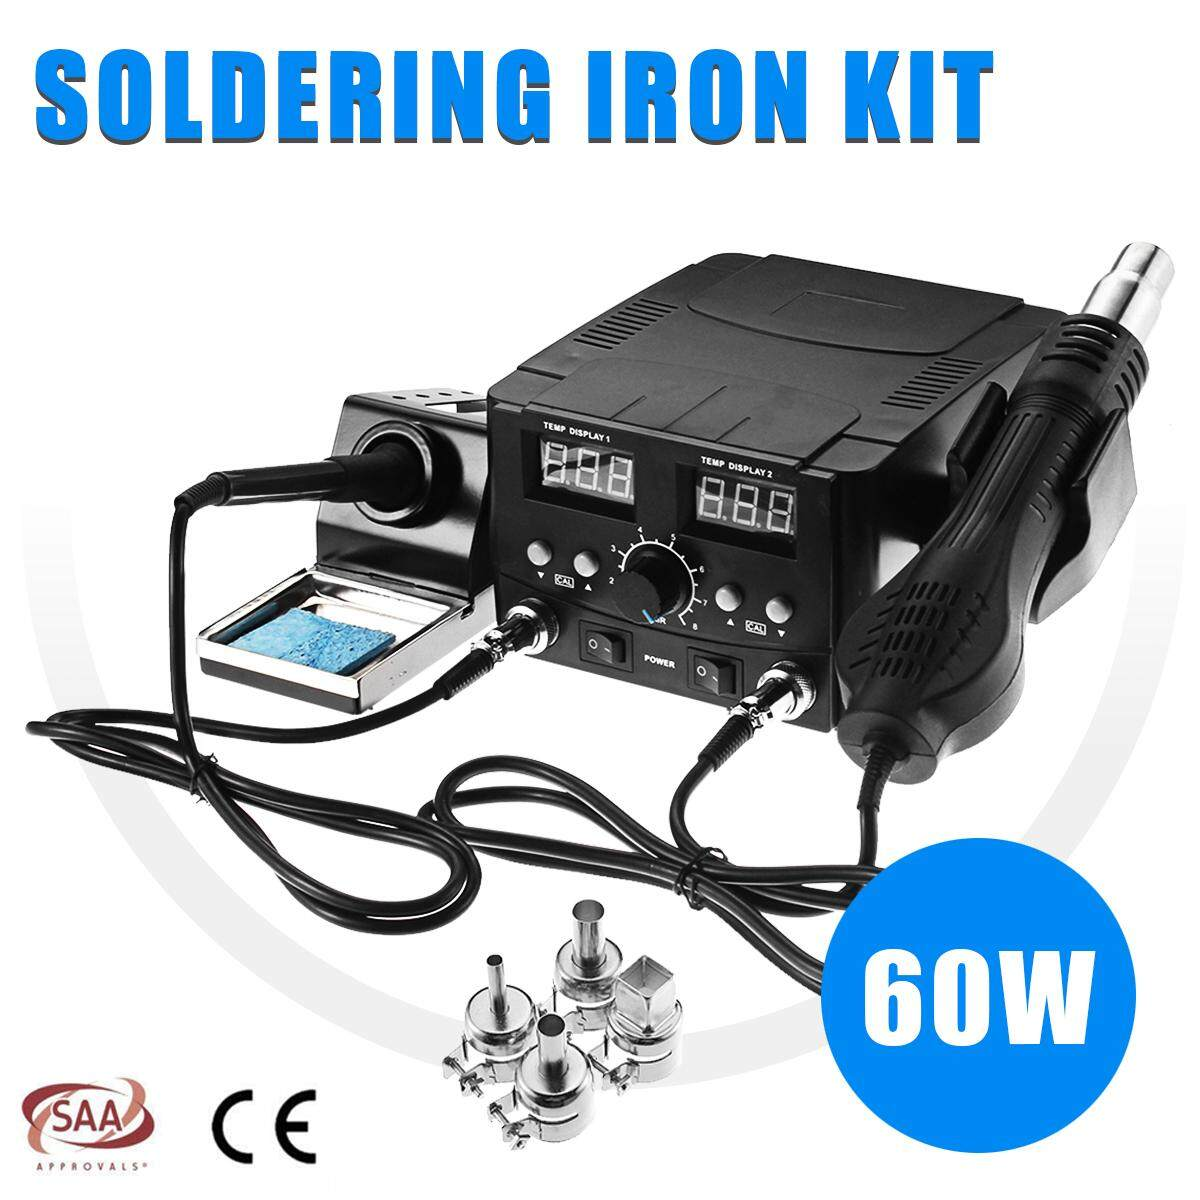 2 In1 Digital Hot Air Rework Soldering Station Soldering Iron Solder Rework Station Smd Desoldering Intl China